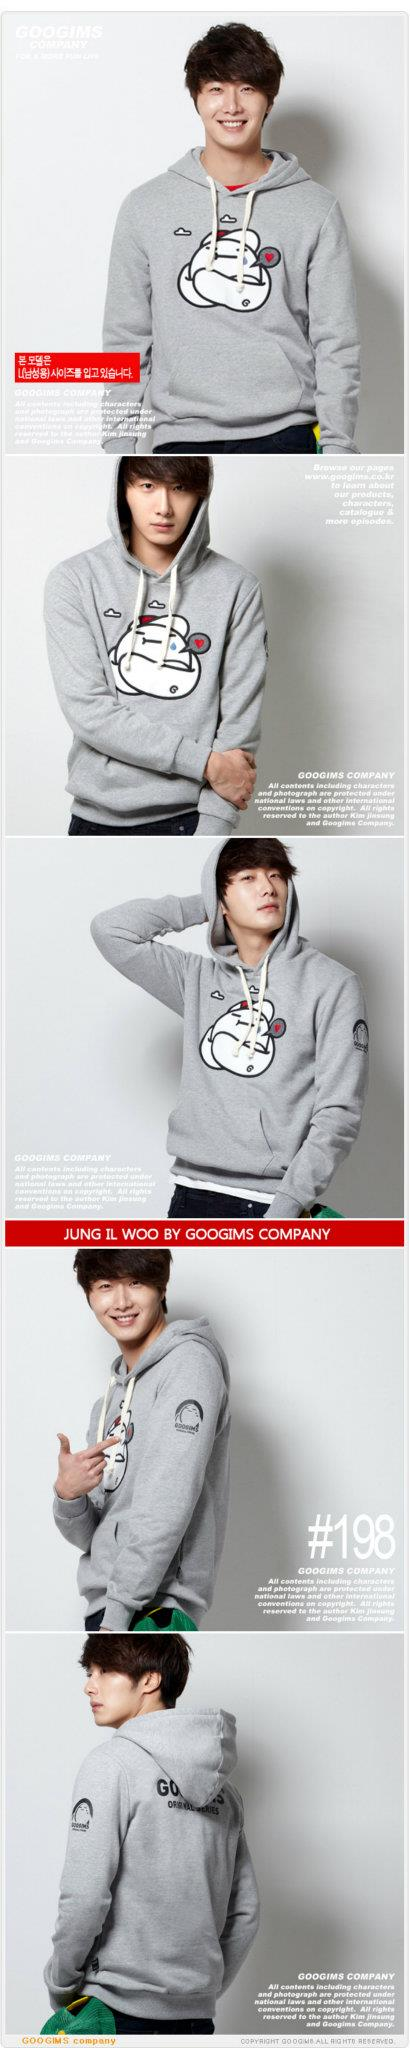 2011 10 Jung II-woo for Googims. Part 100037